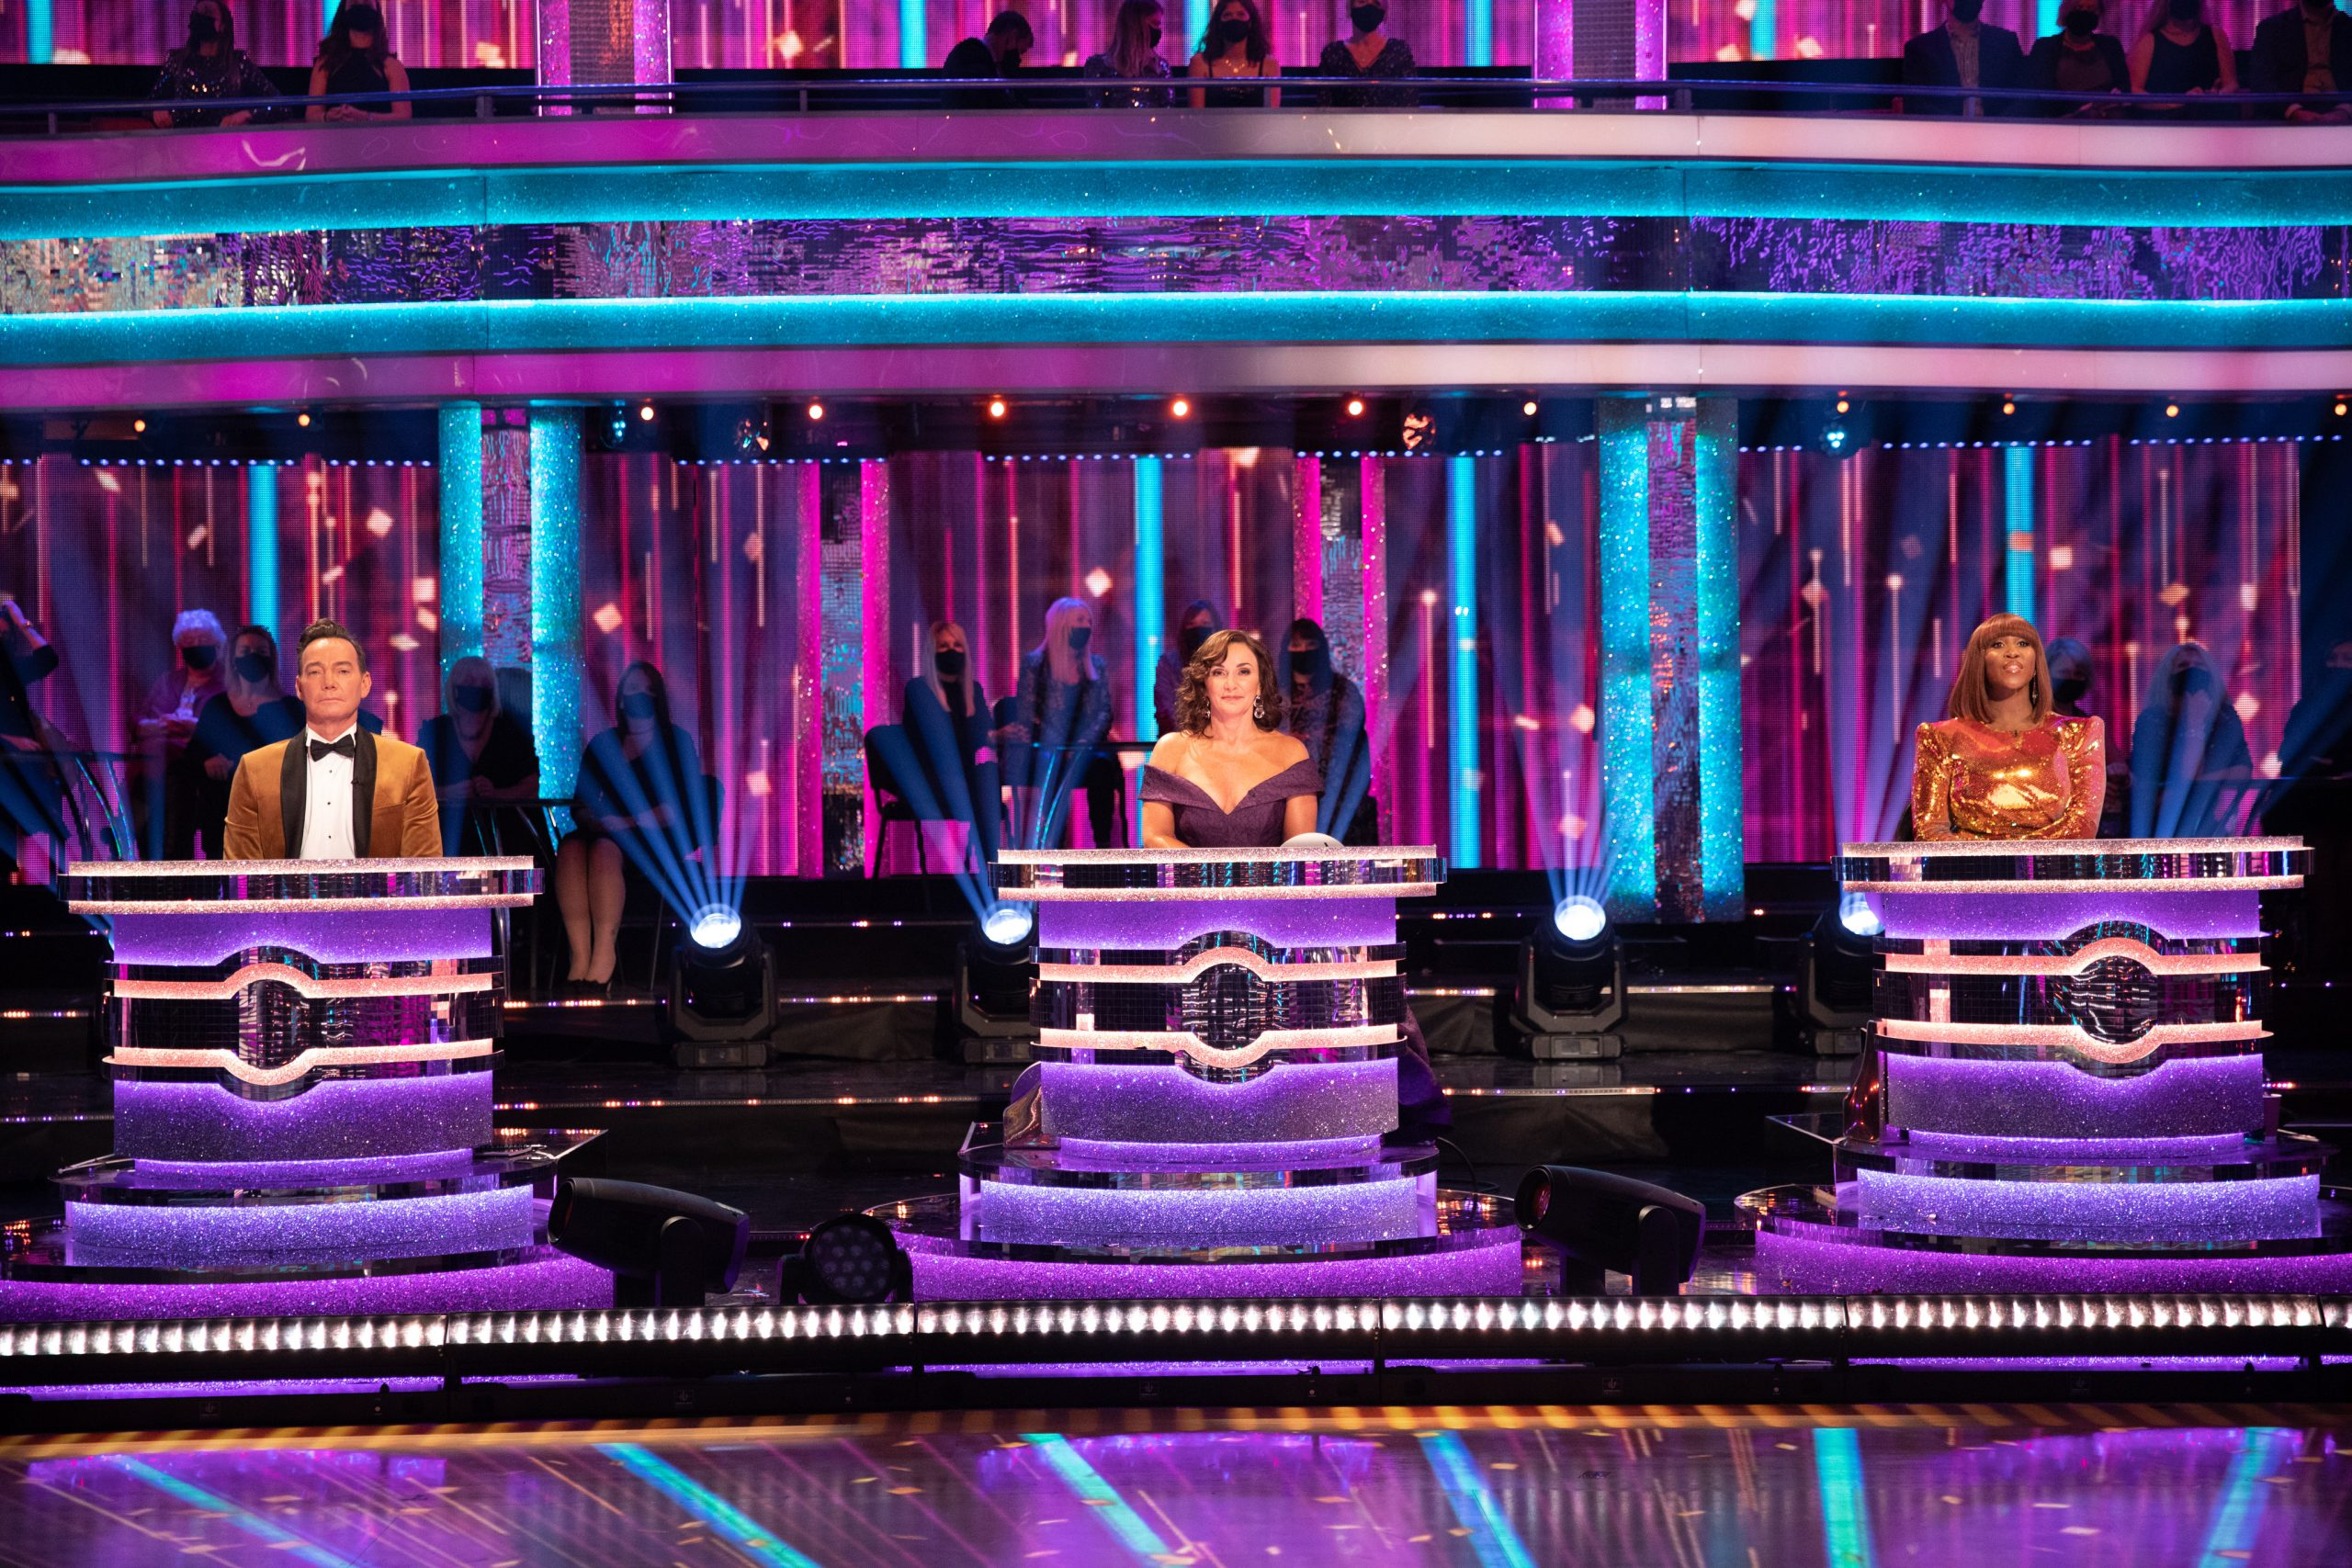 Strictly Come Dancing judges on the panel